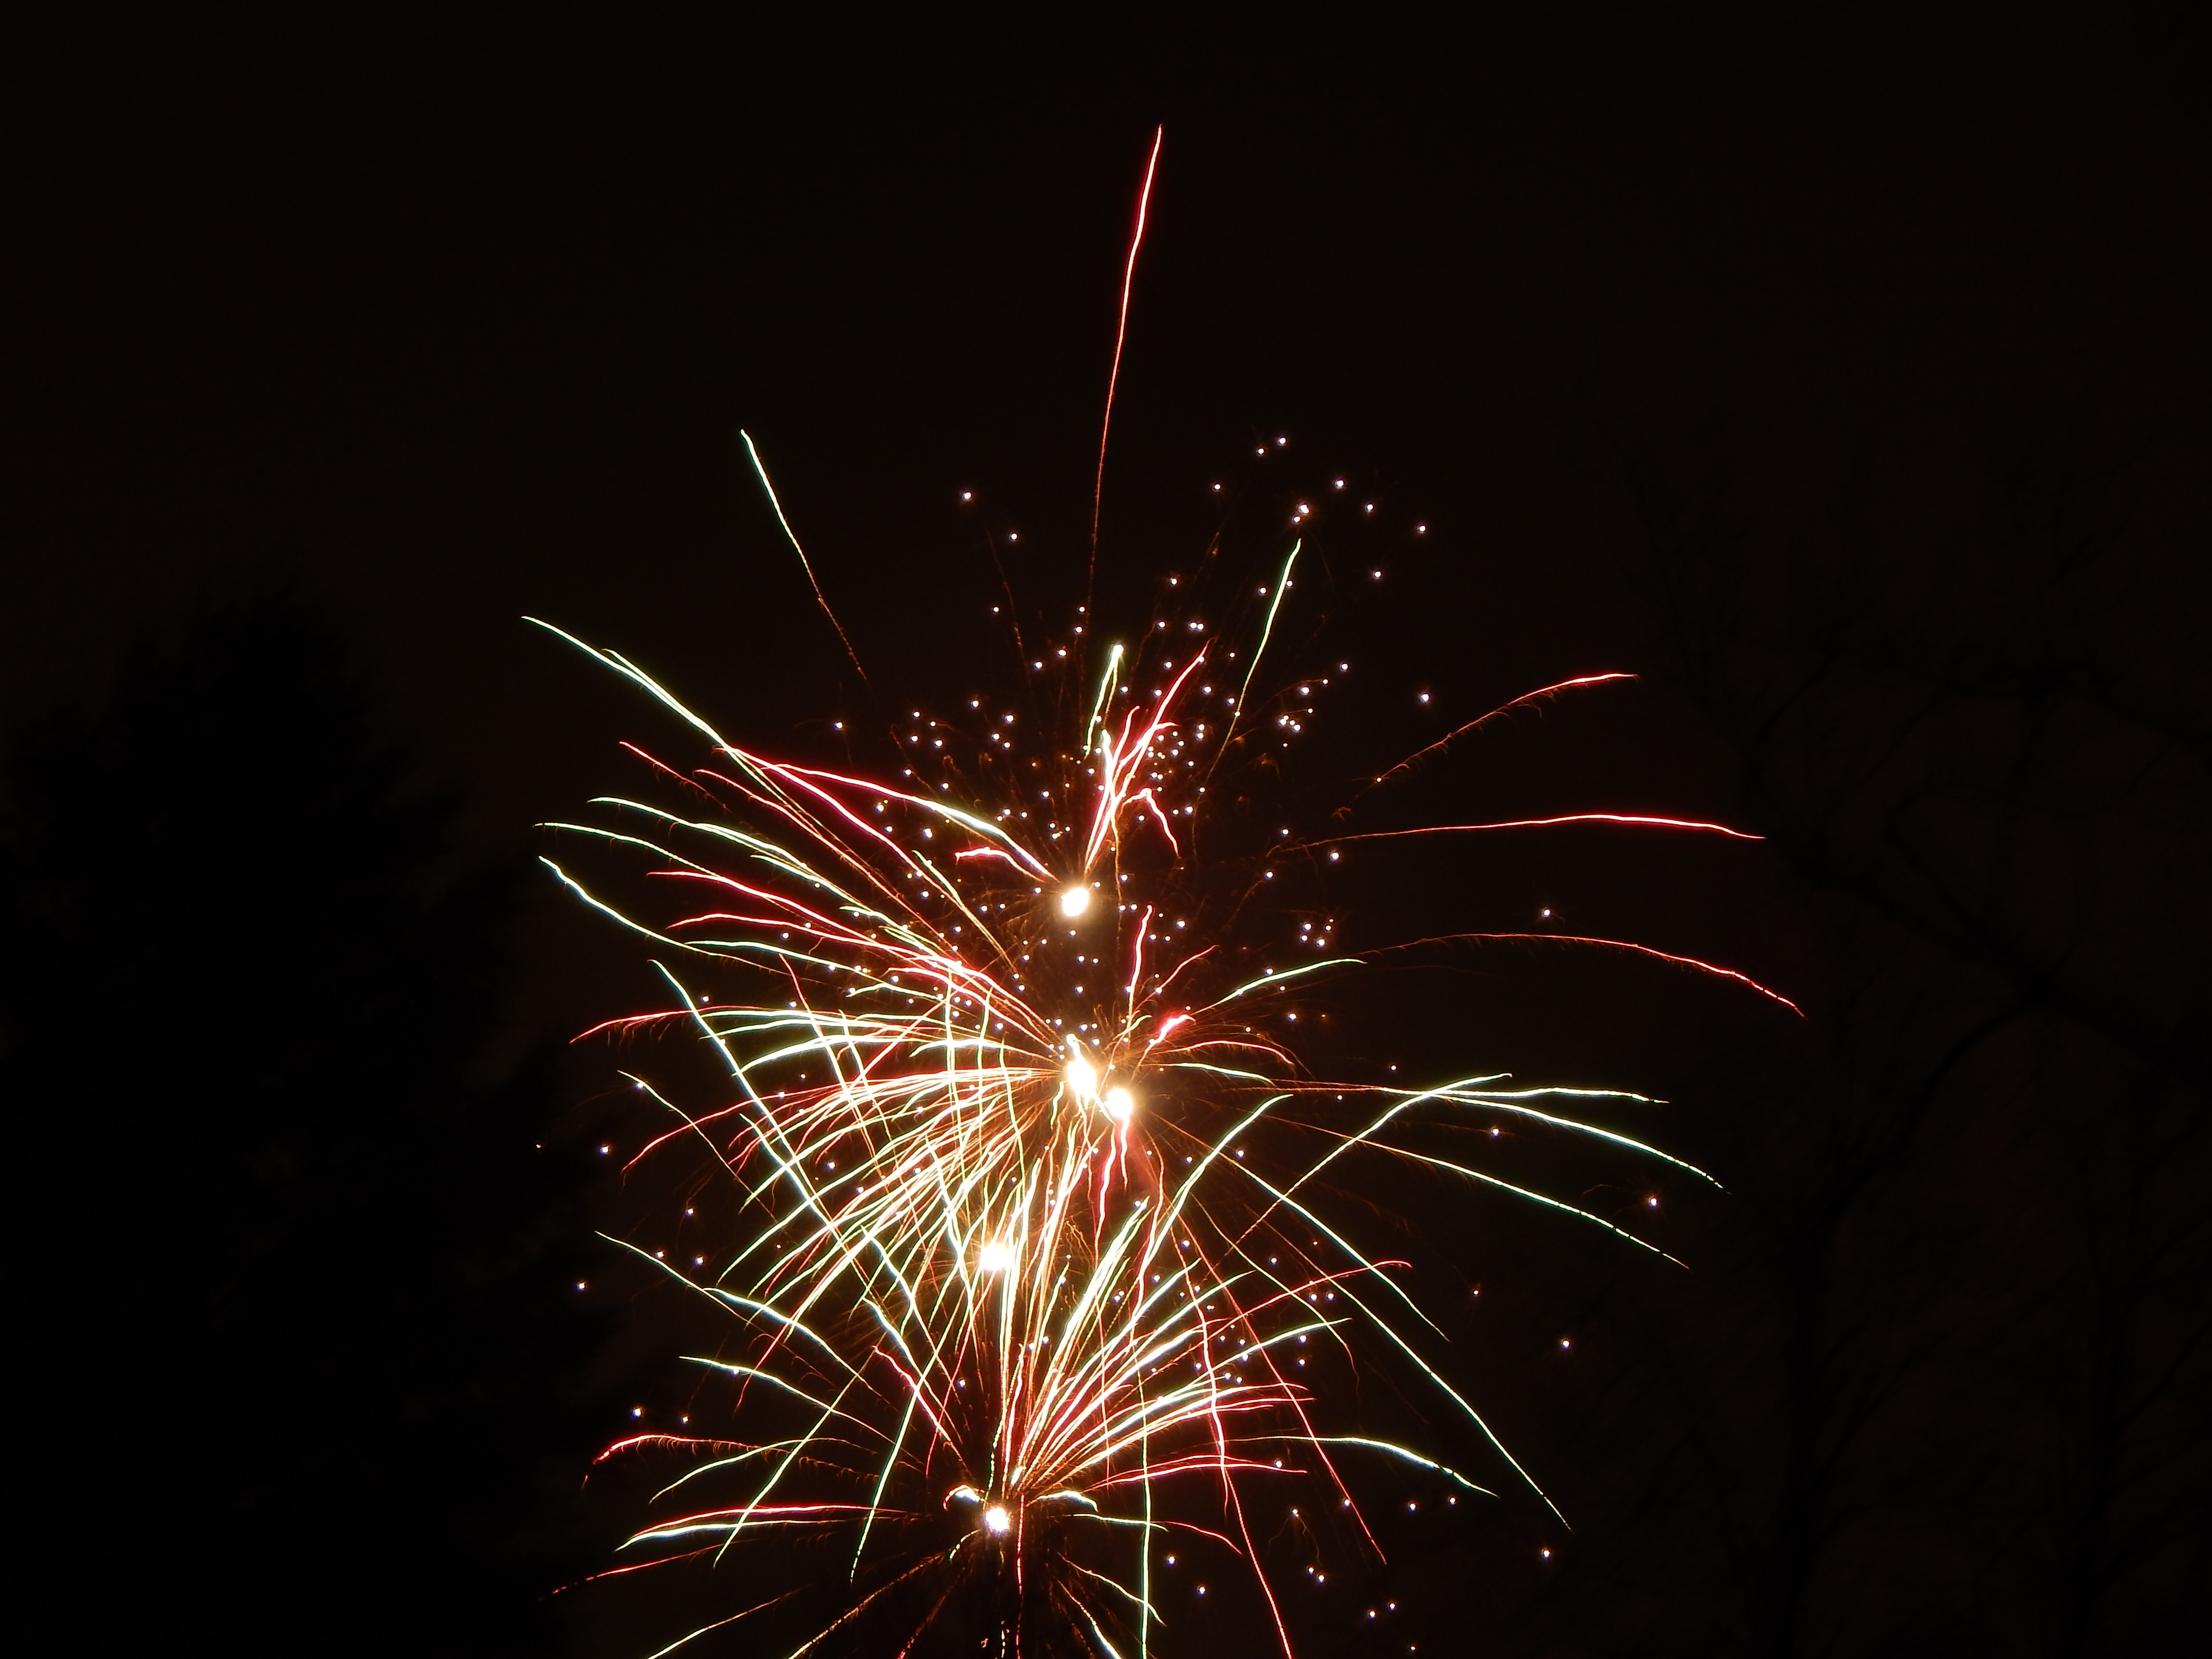 low light photography of fireworks